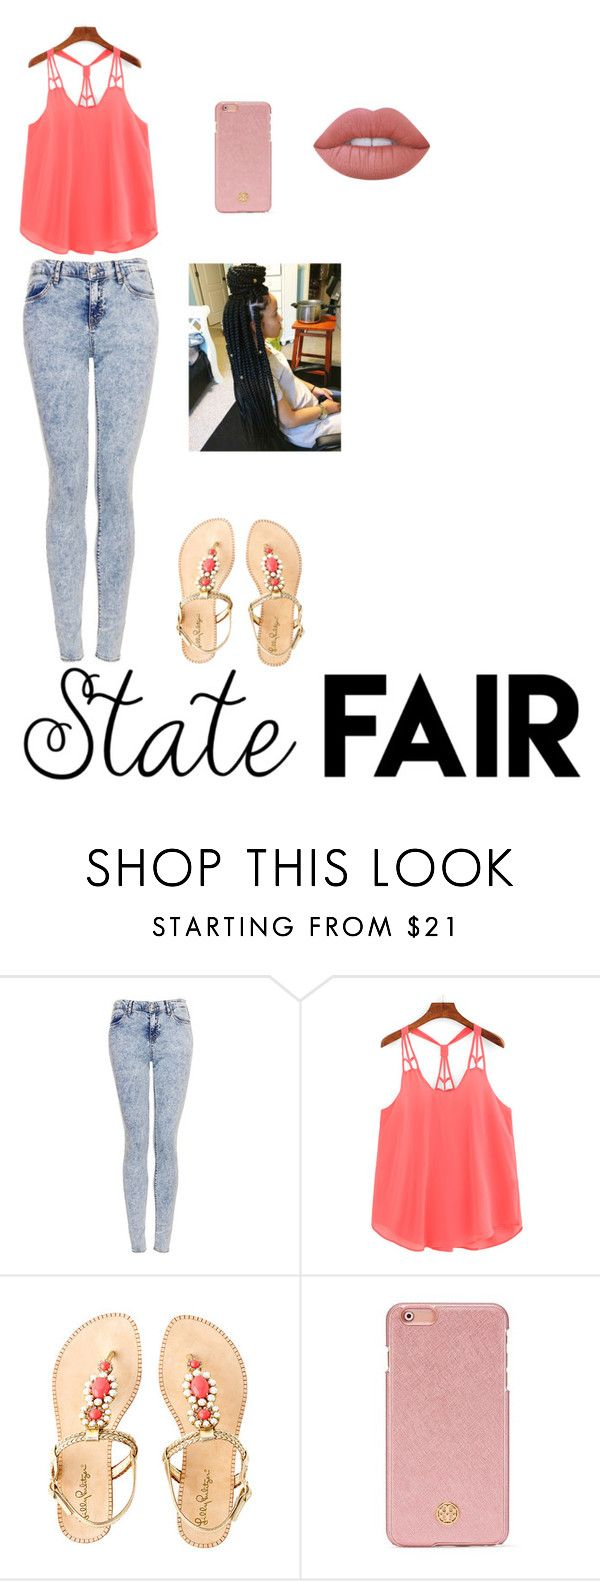 """""""state fair date"""" by cece-slay ❤ liked on Polyvore featuring Topshop, Lilly Pulitzer, Tory Burch, Lime Crime, statefair and summerdate"""